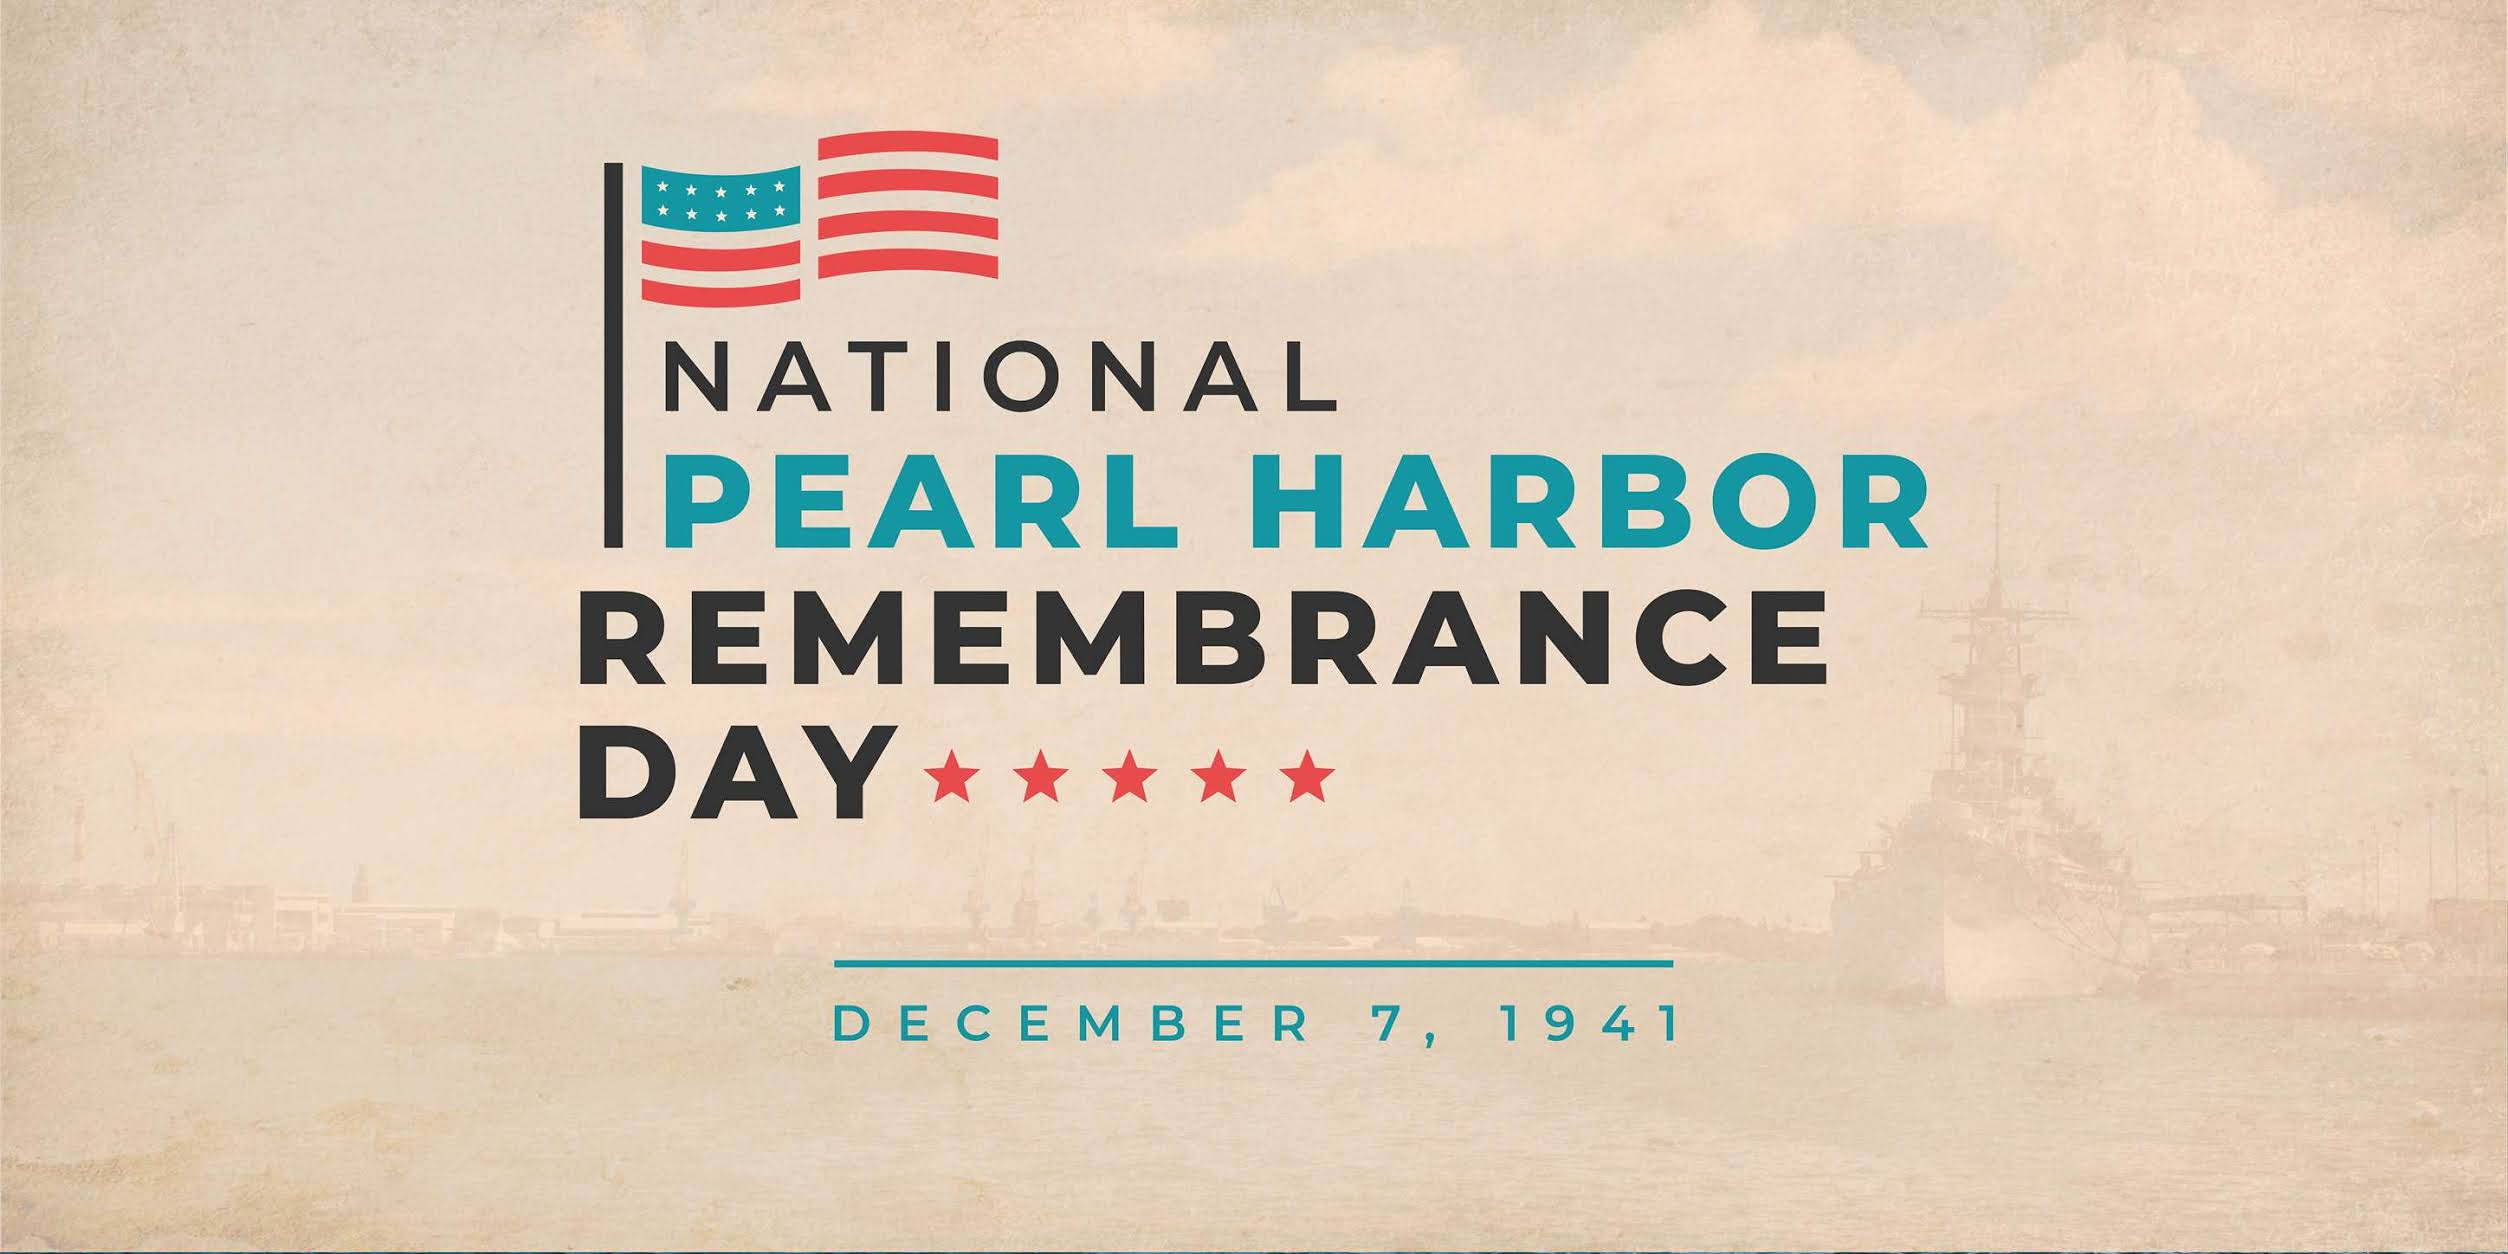 National Pearl Harbor Day of Remembrance Wishes for Instagram